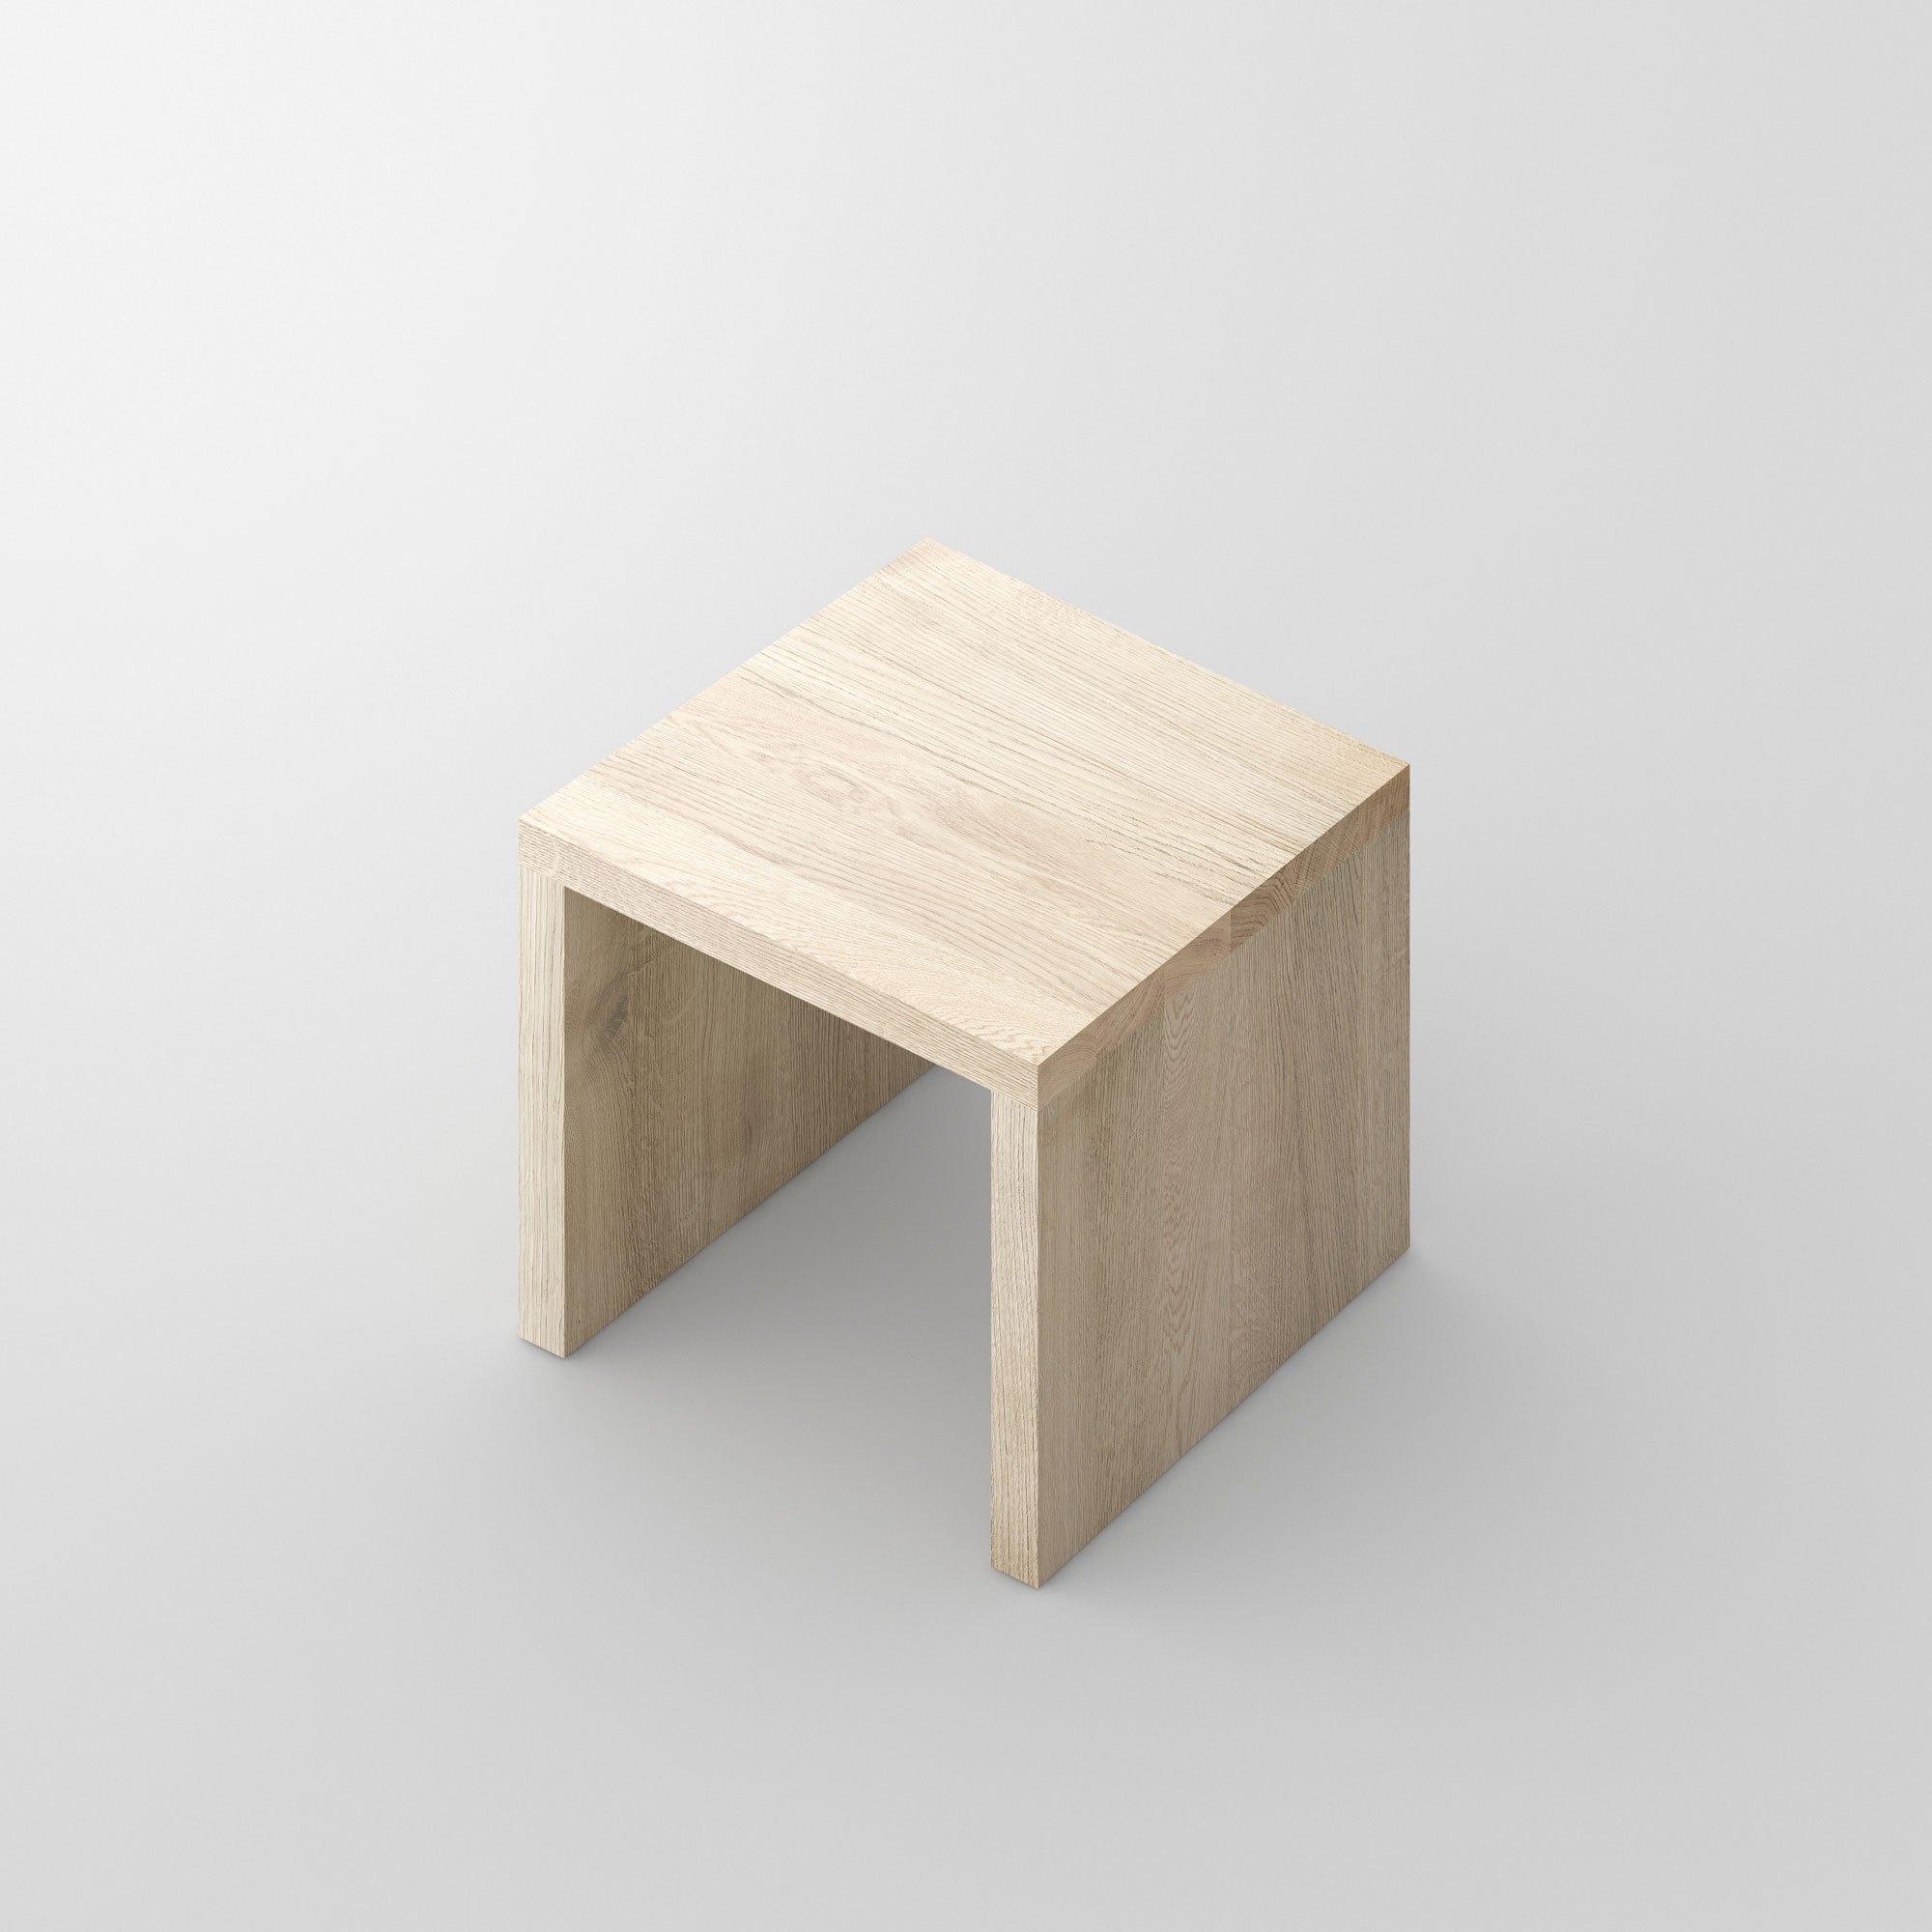 Multifunctional Solid Wood Stool MENA 4 cam3 custom made in solid wood by vitamin design